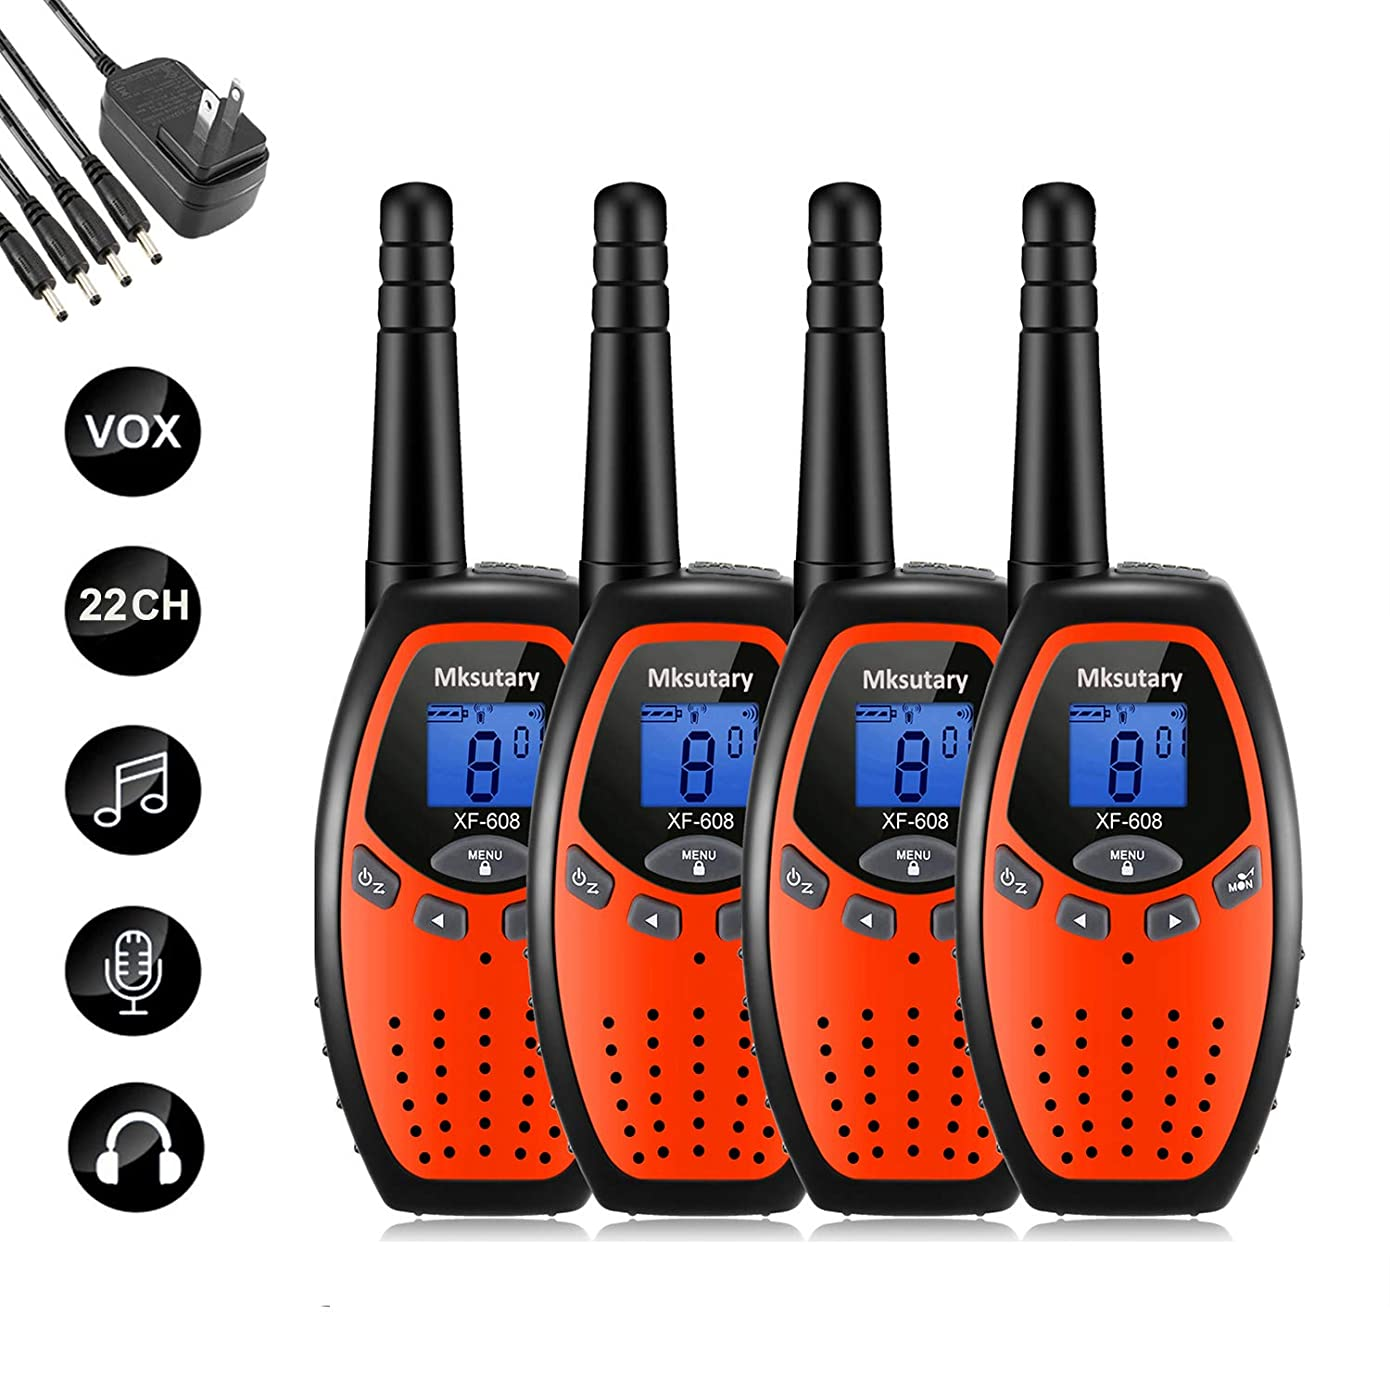 Walkie Talkies Rechargeable 4 Pack Walkie Talkie Kids Rechargeable 2 Way Radios Long Range 2 Miles 22 Channels Handheld Transceiver with DC Charger for Kids Adults Cruise Biking Hiking Orange